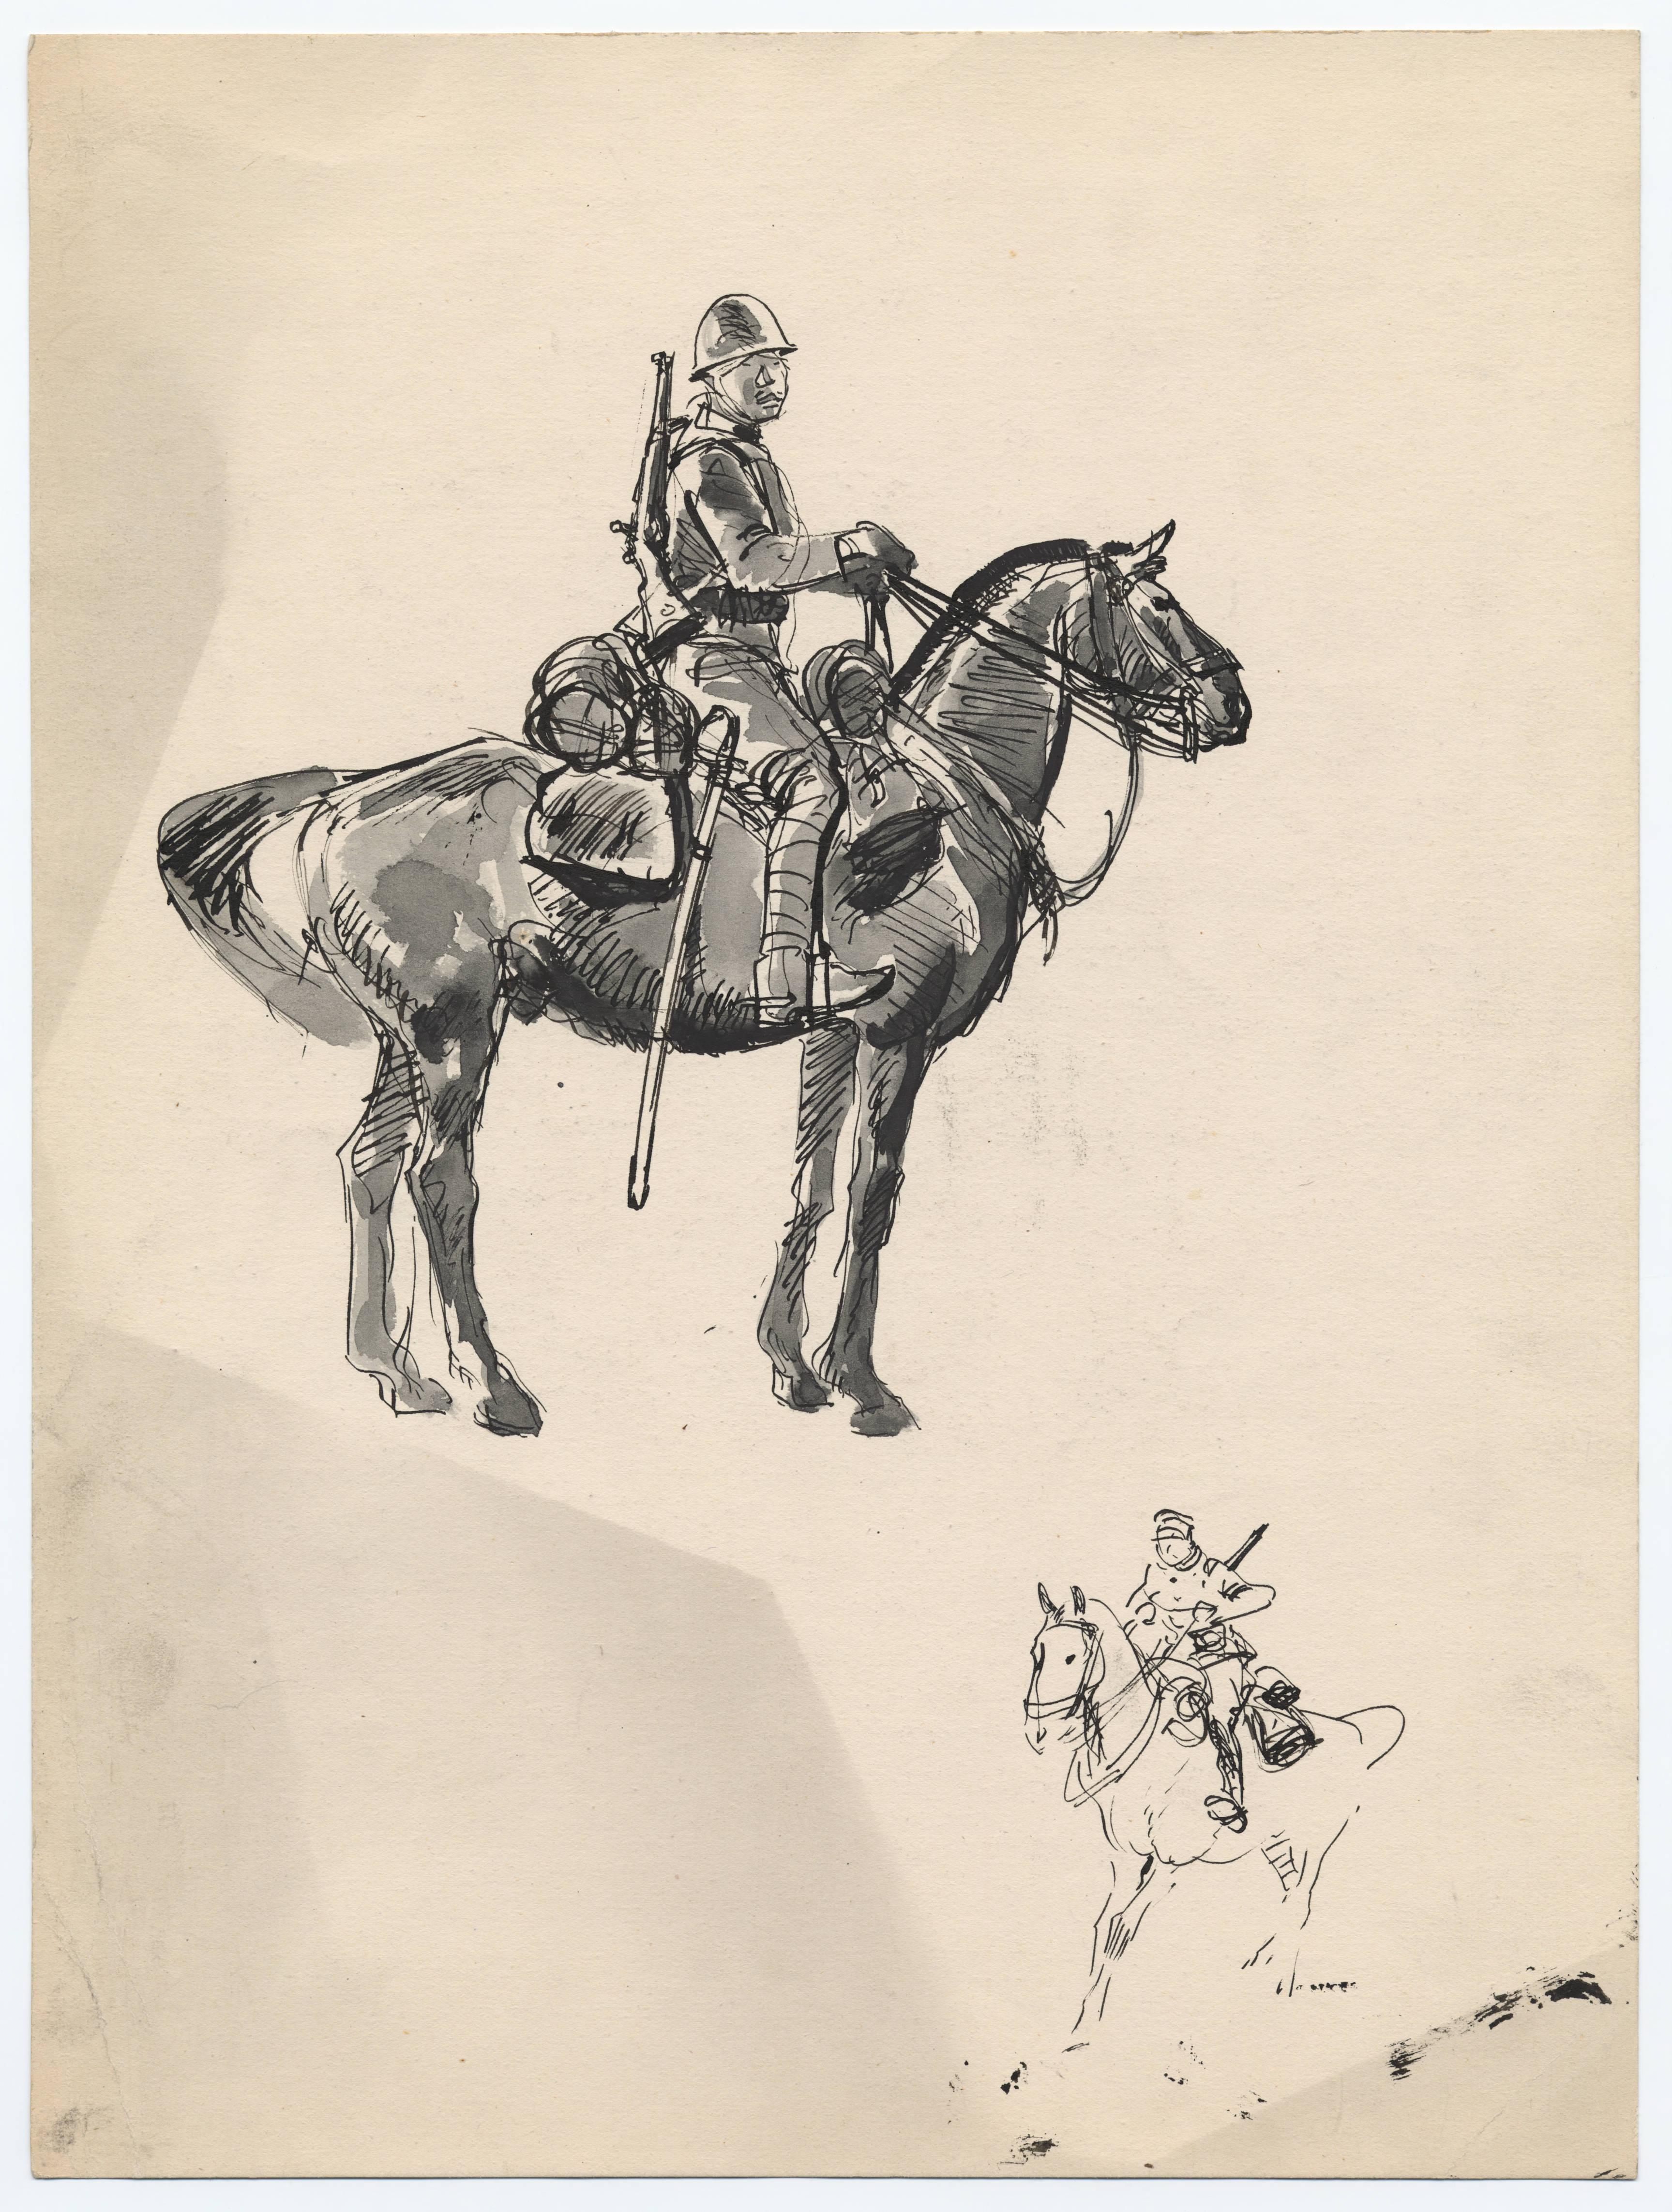 Chinese soldier on horseback